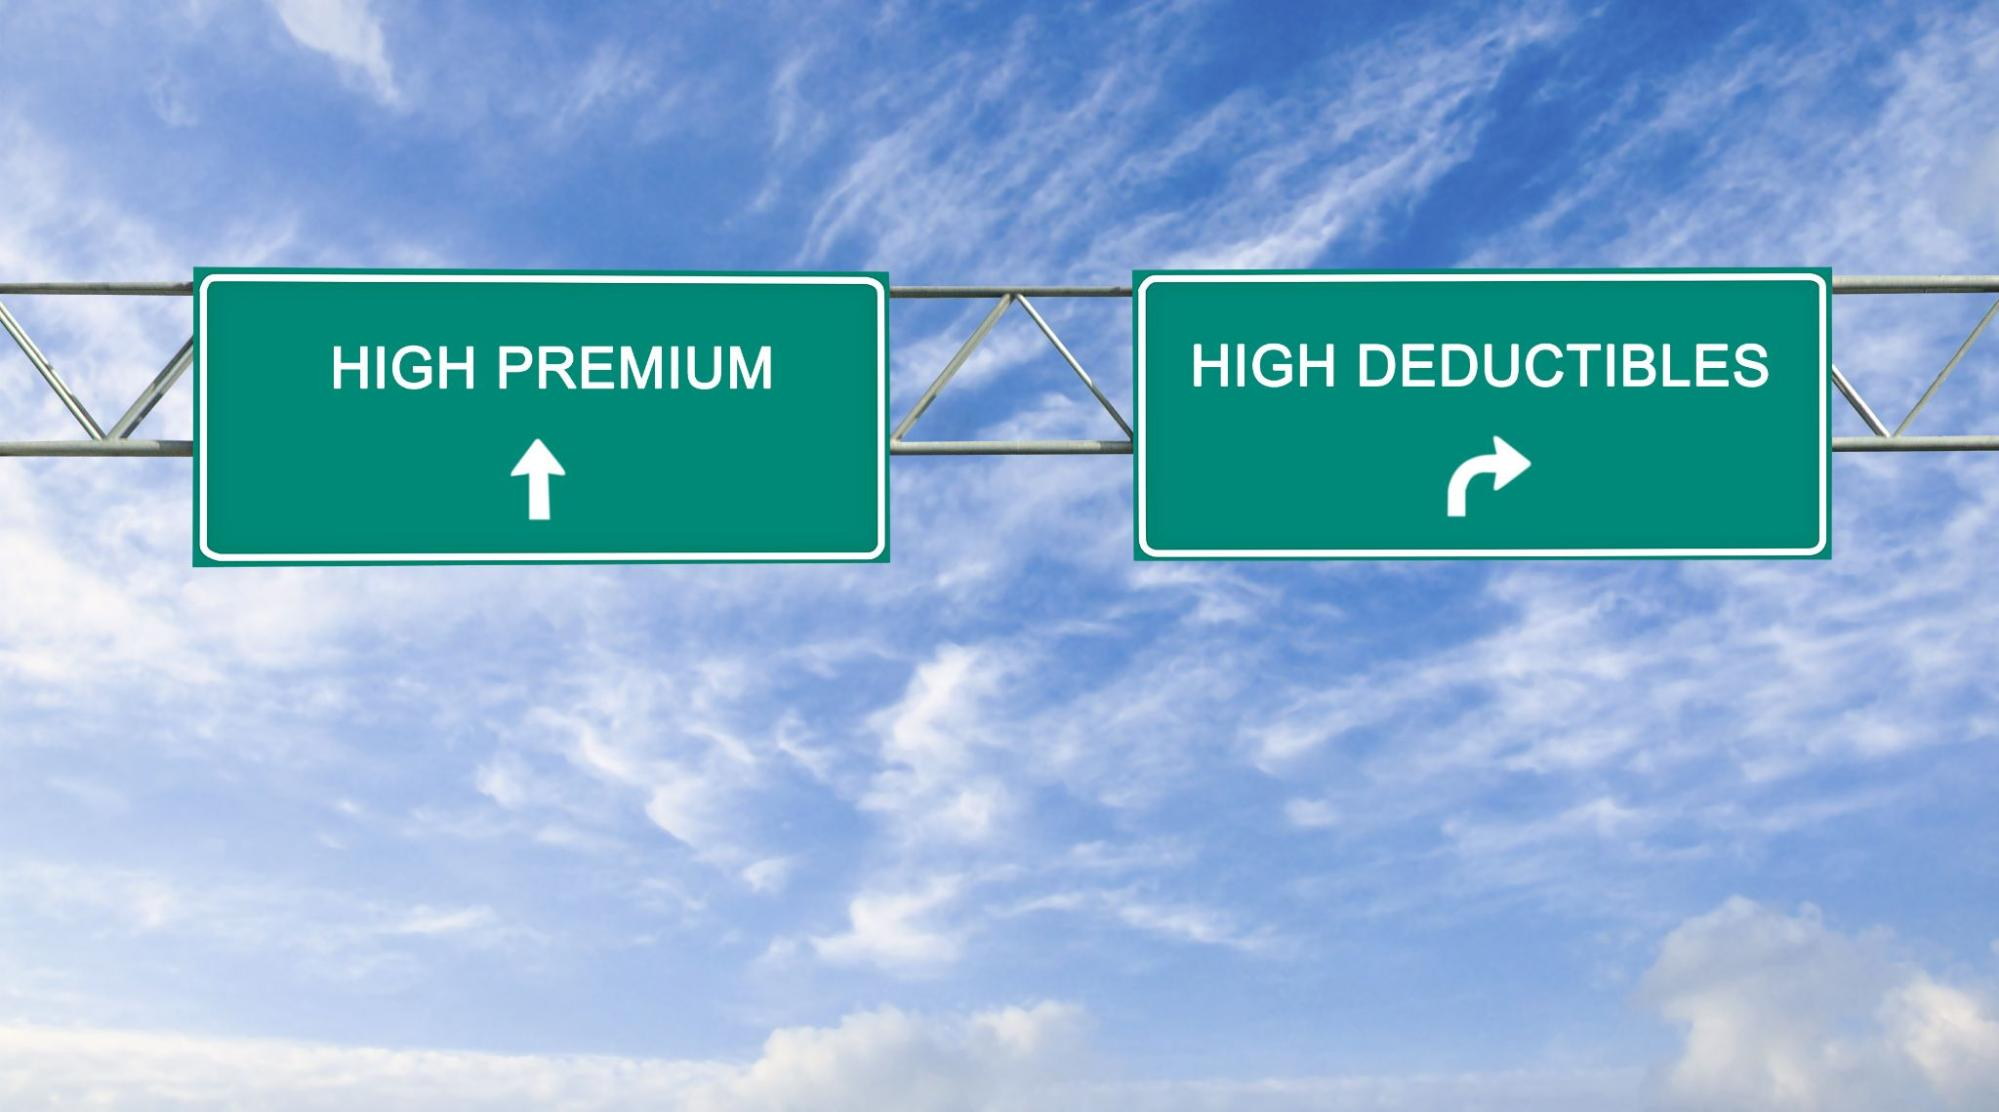 Road signs representing the choice between high deductibles or high premiums